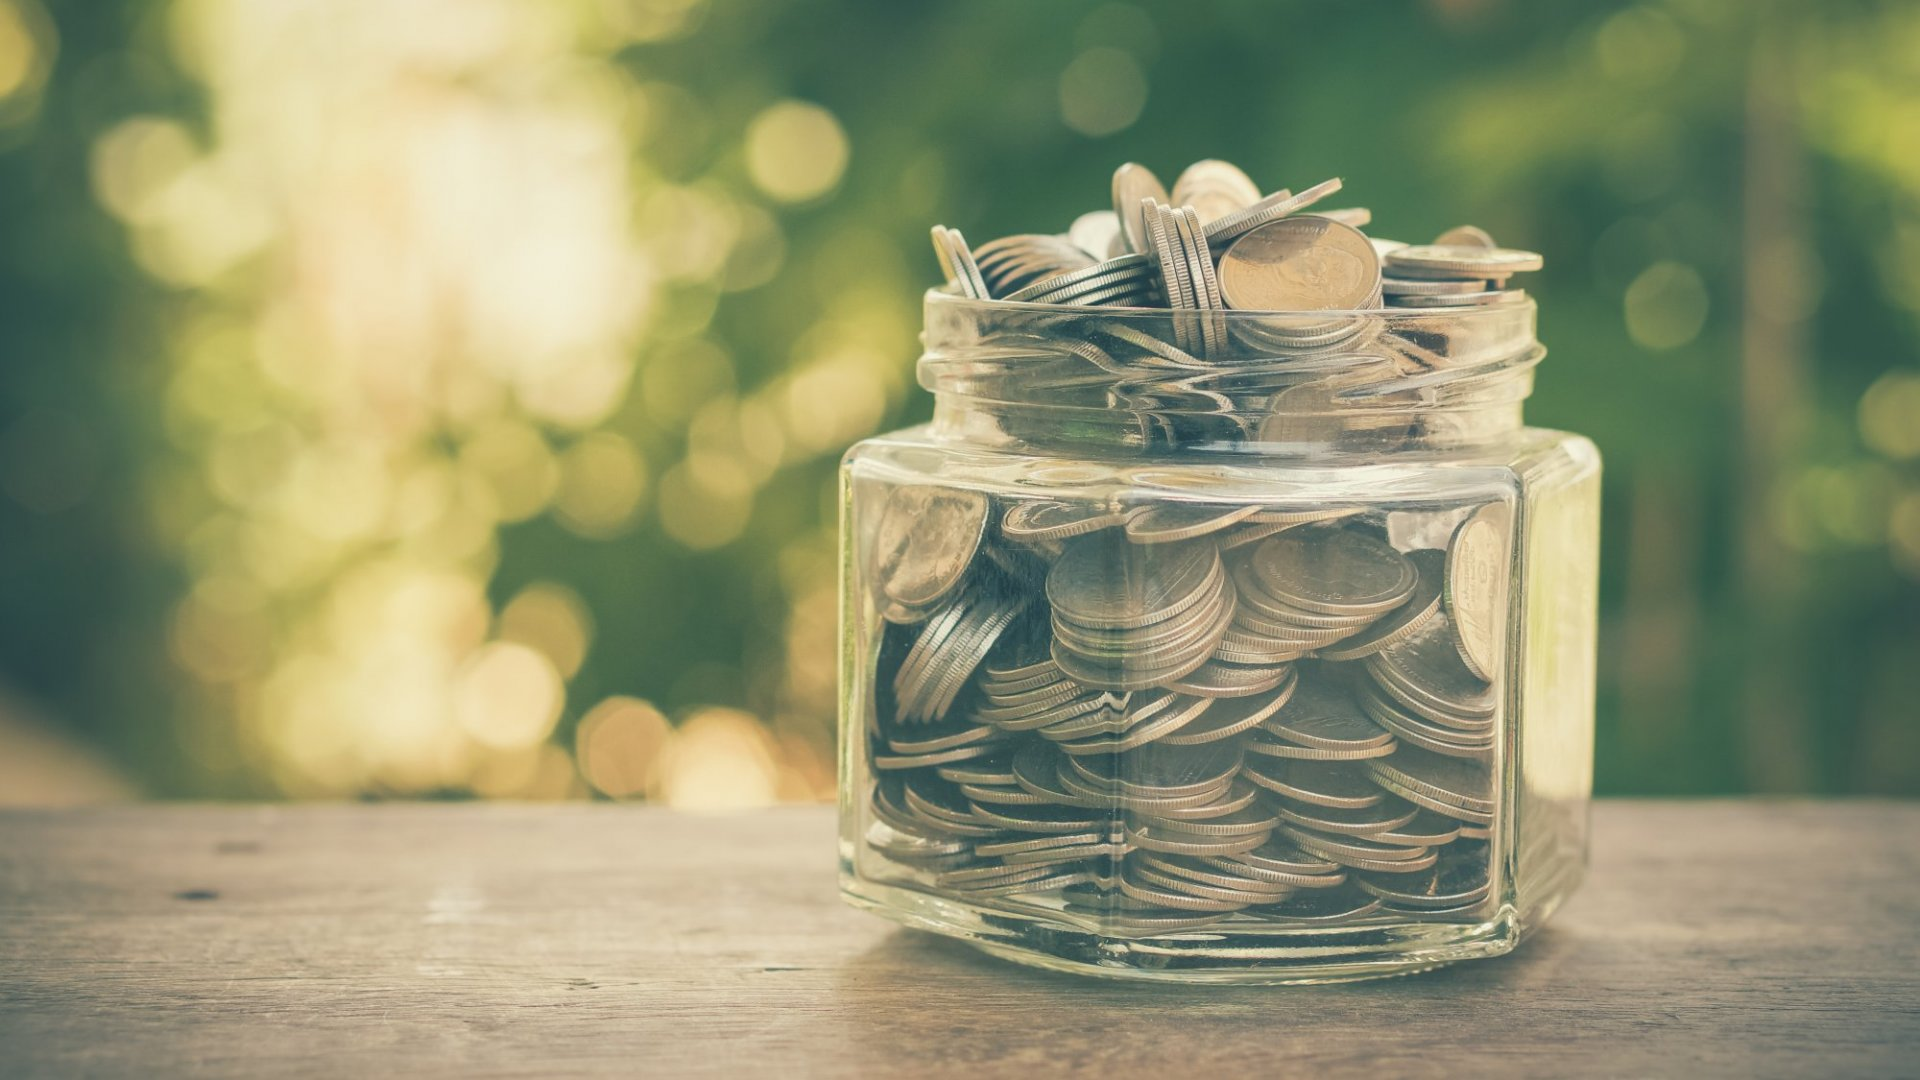 3 Simple Ways to Make Generosity a Win-Win For Your Company and Your Customers